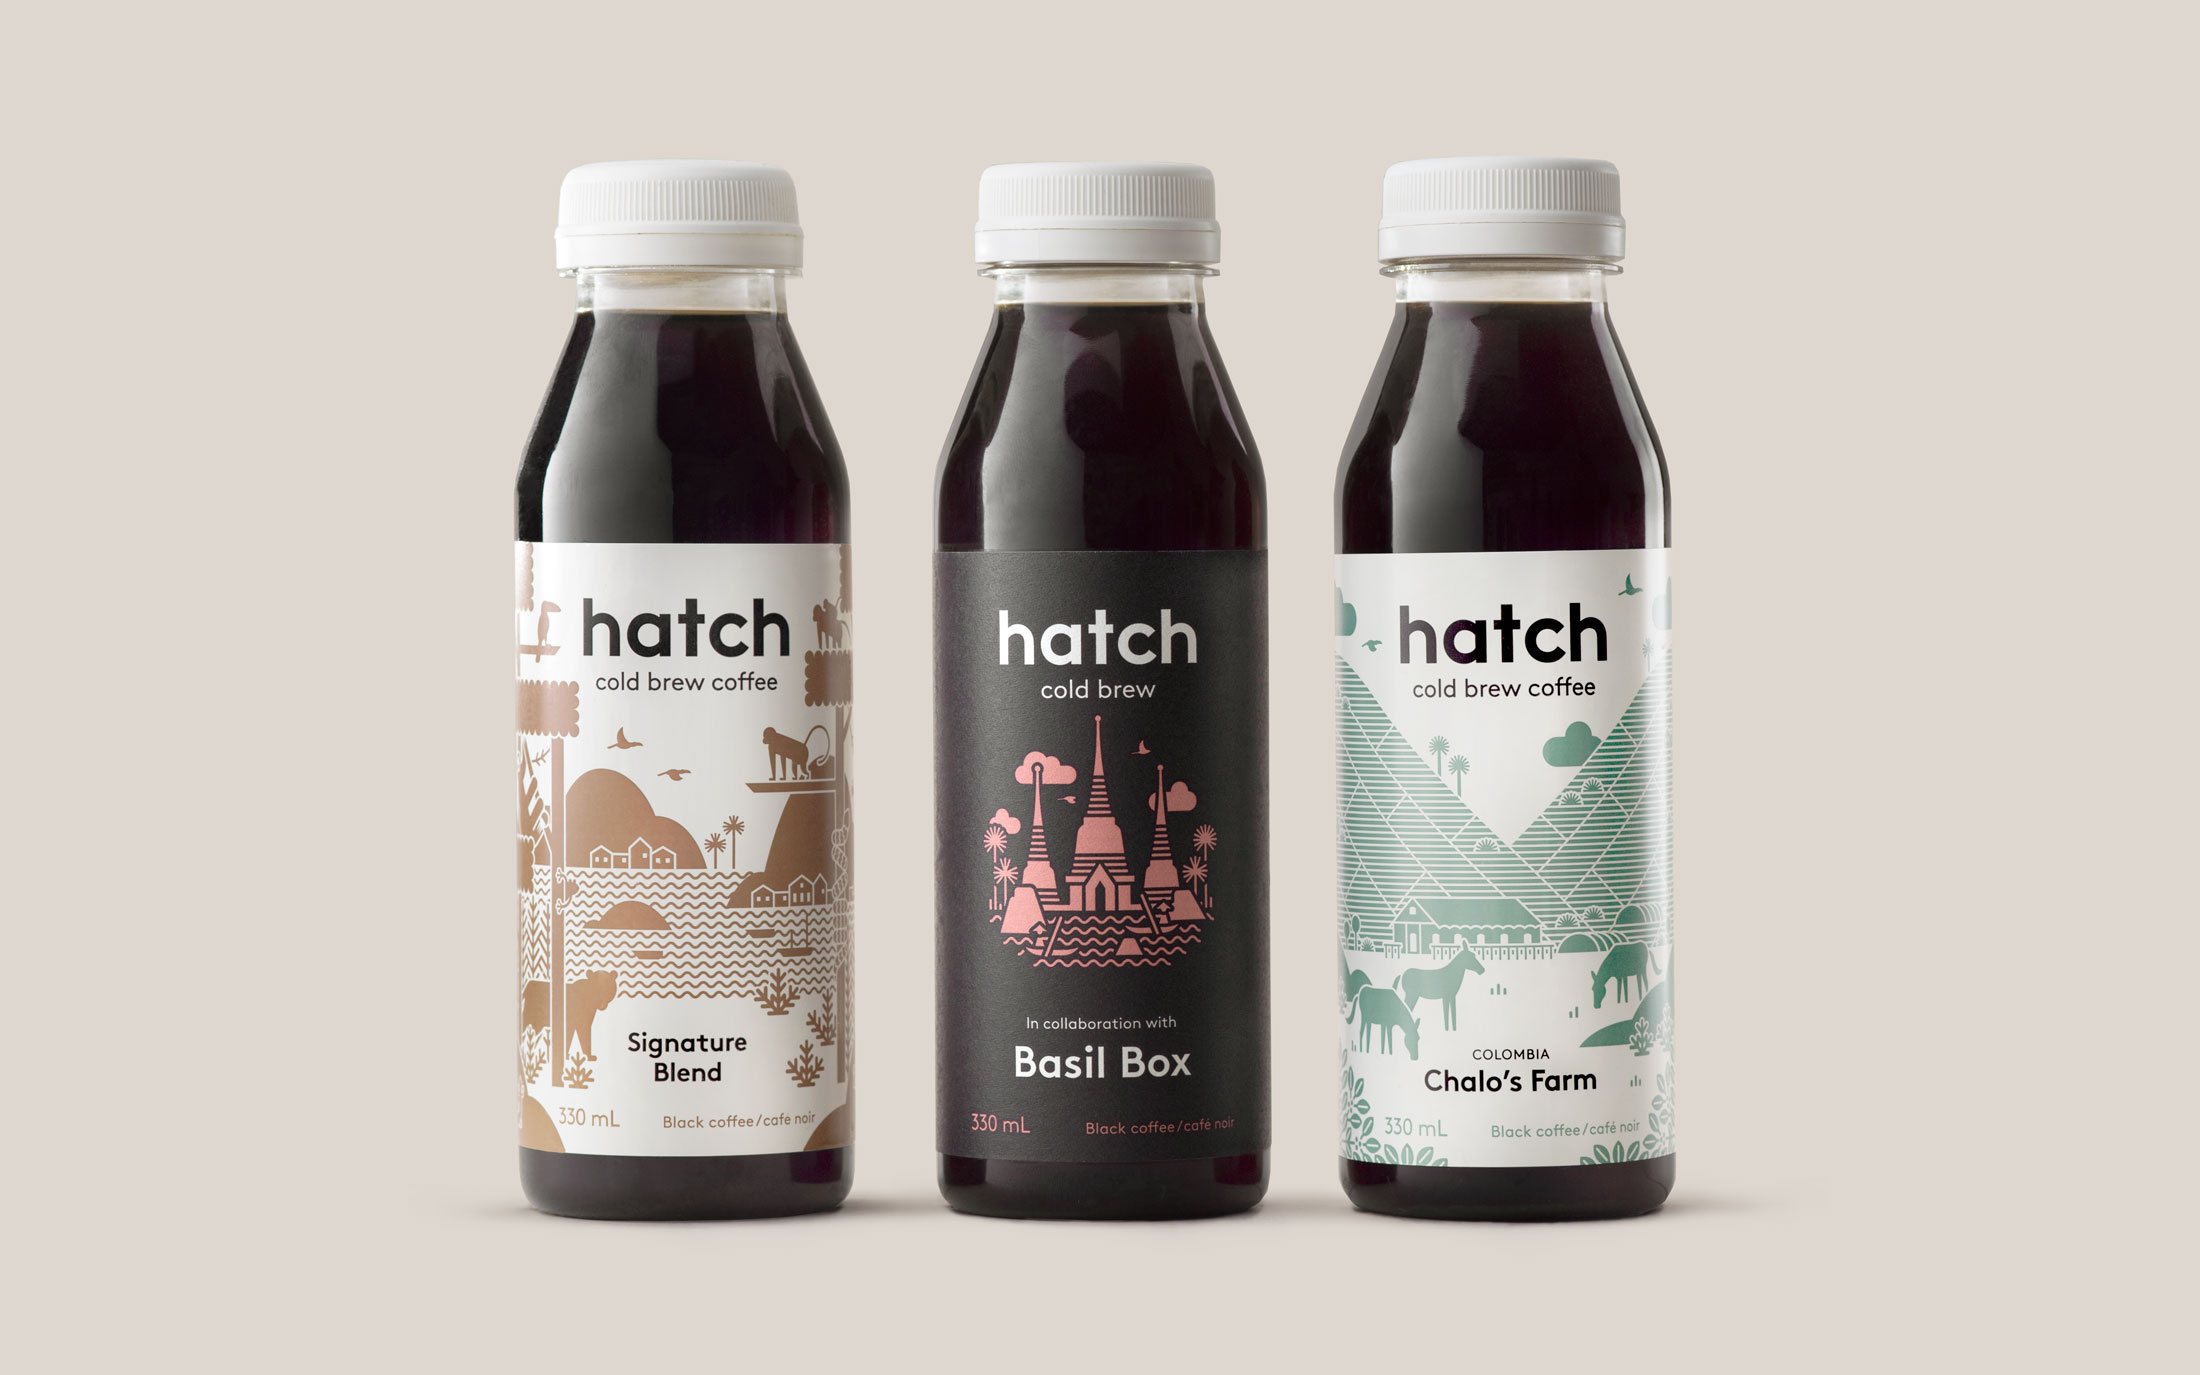 tung_hatch_bottles_group